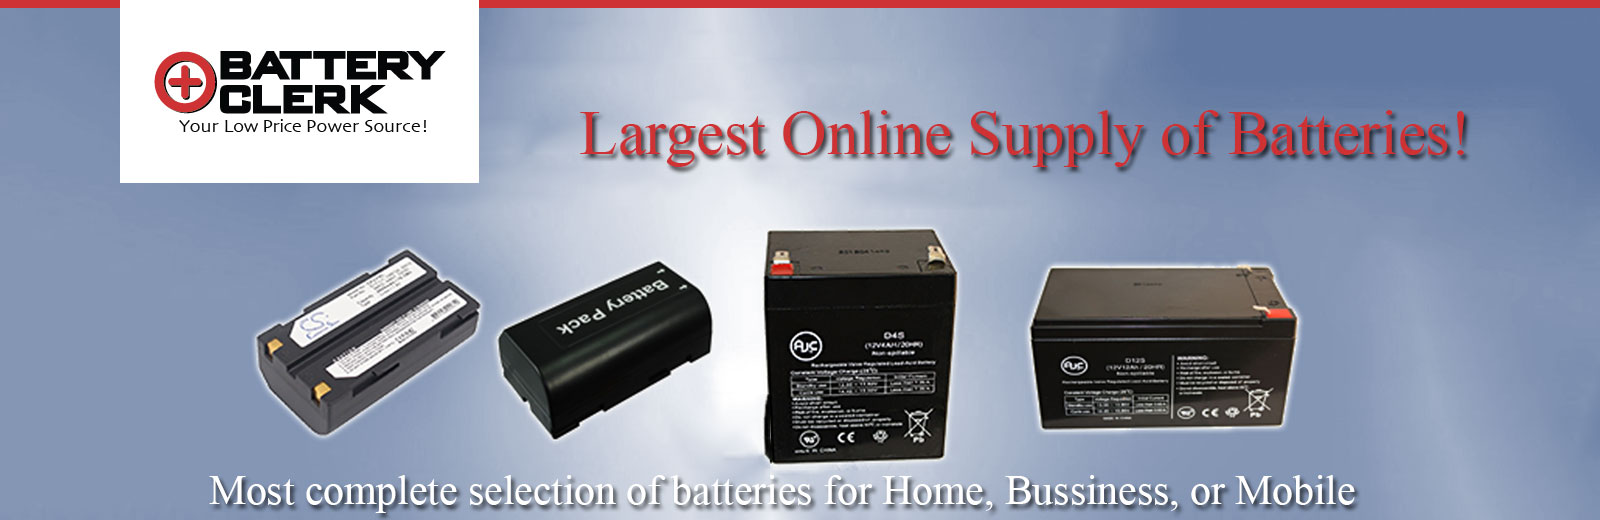 BATTERYCLERK DISCOUNT BATTERIES